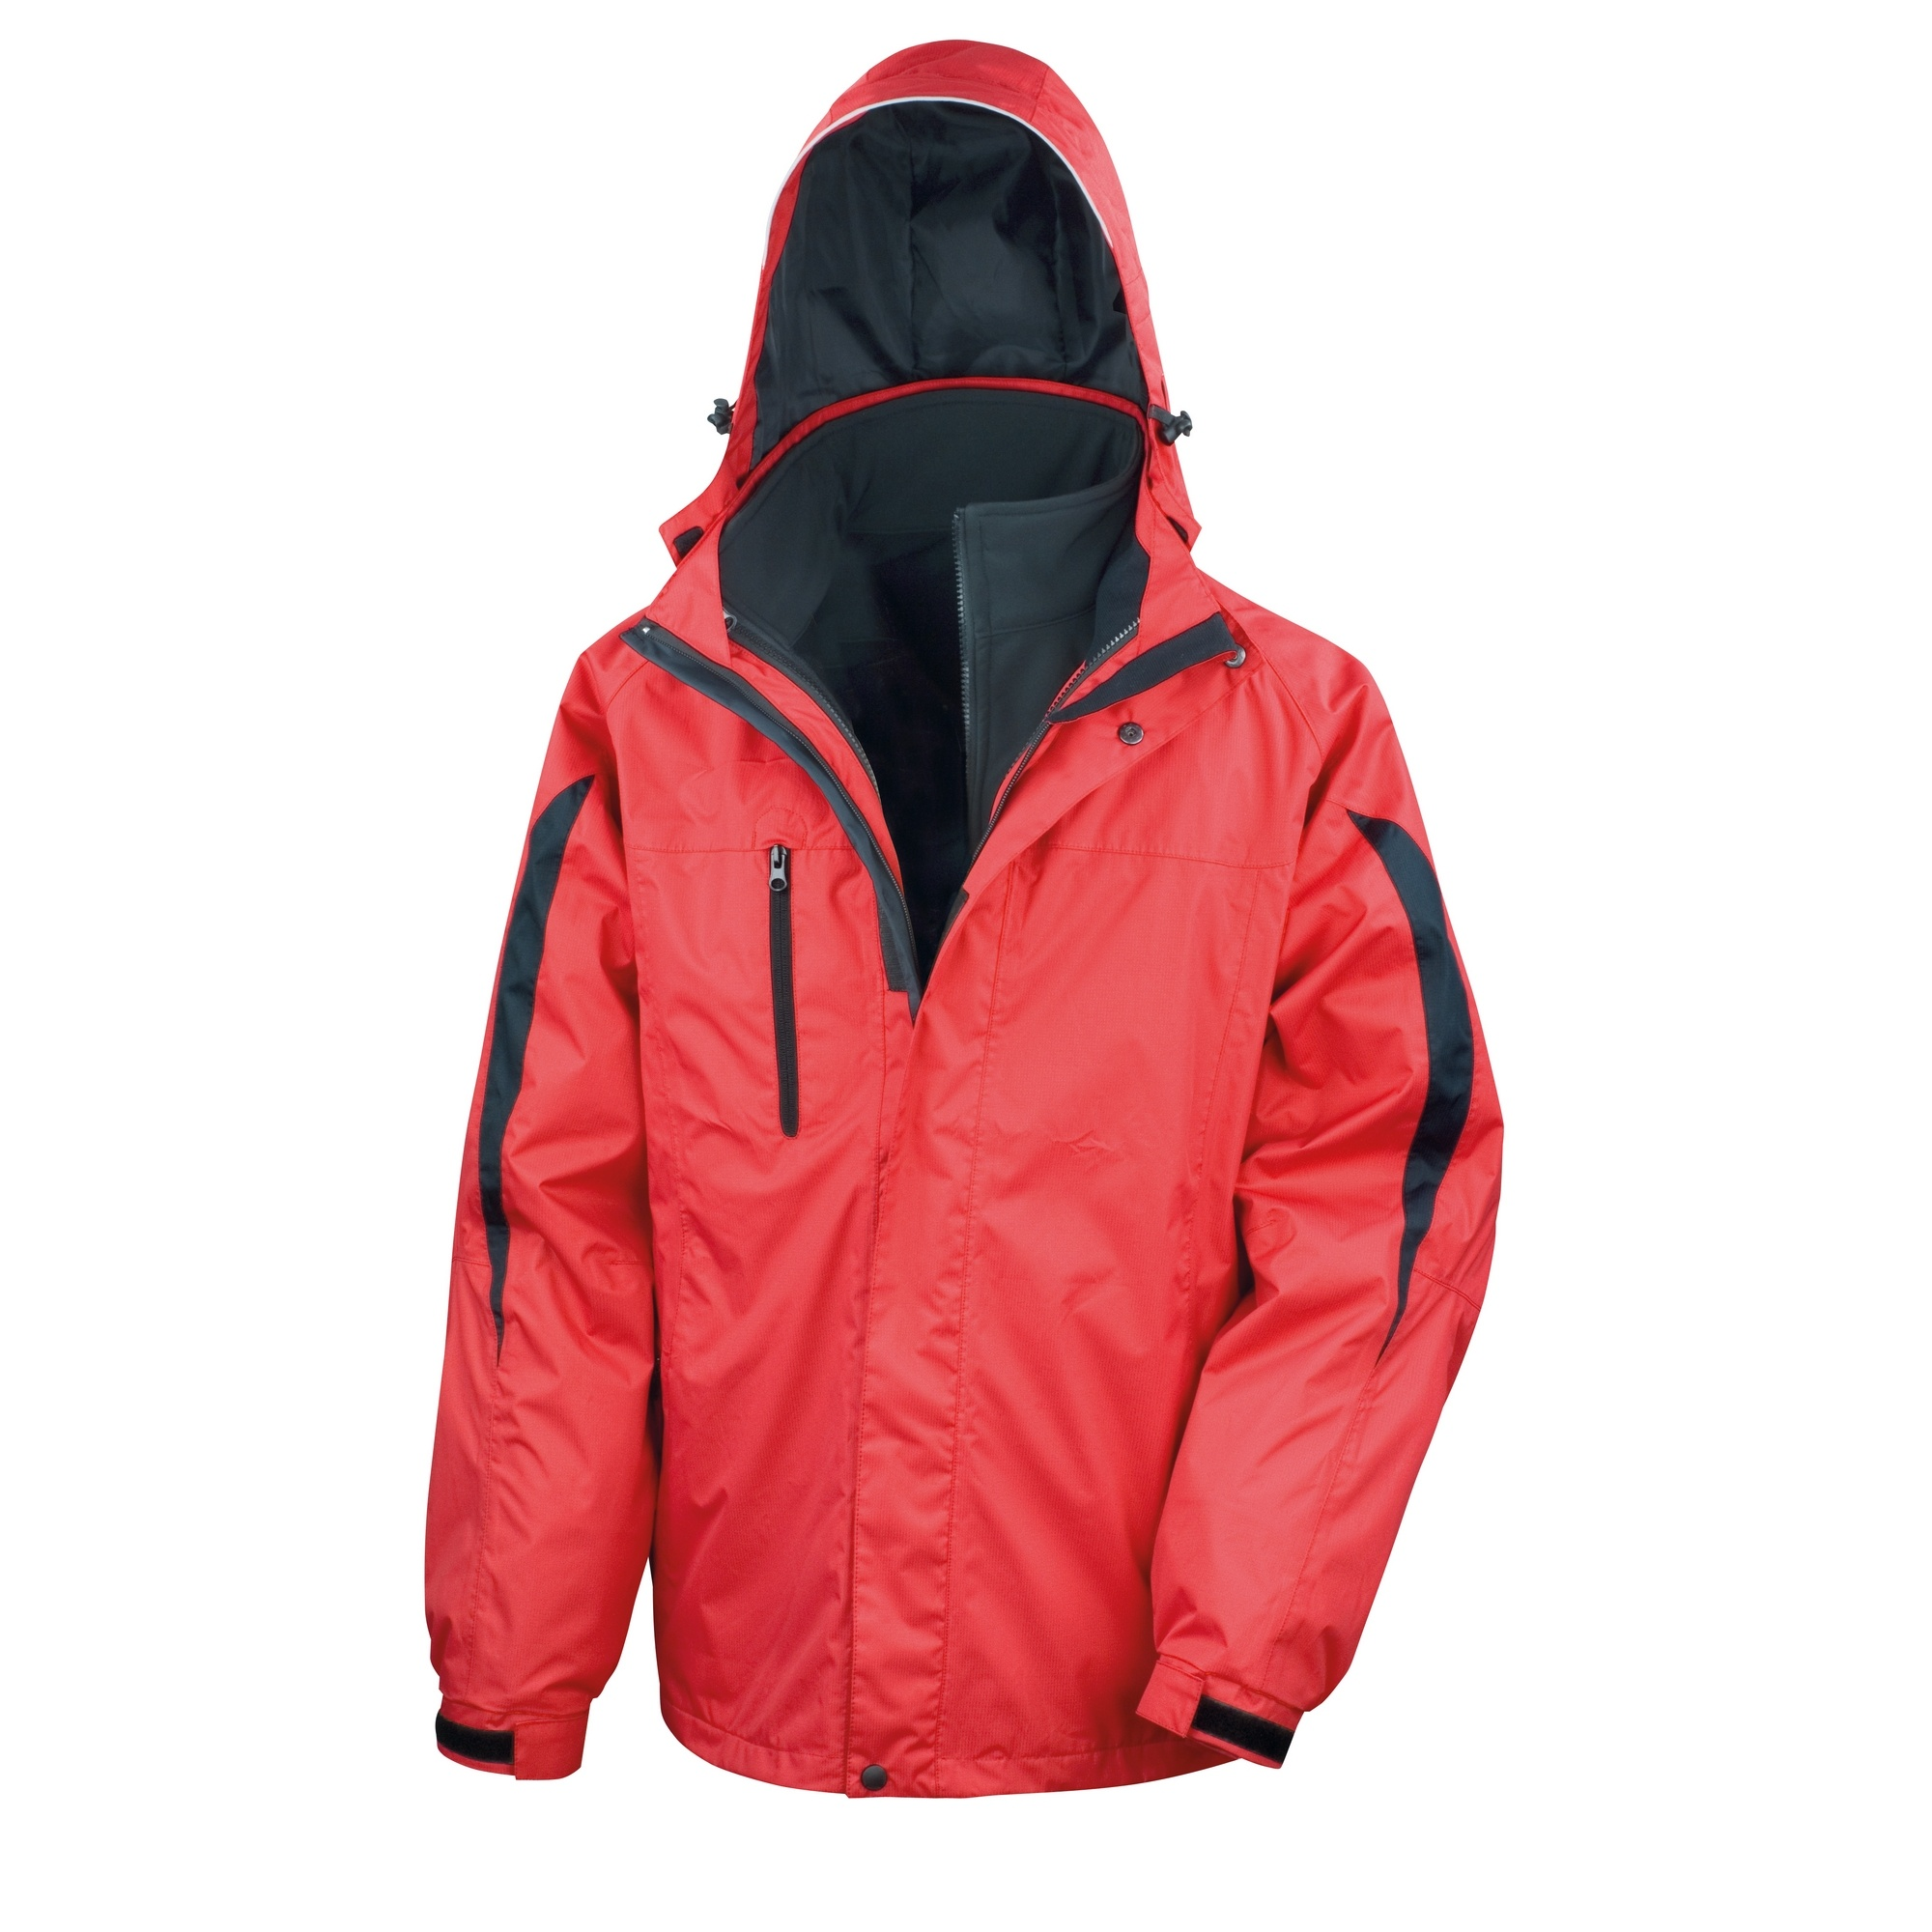 Result Mens 3 In 1 Softshell Waterproof Journey Jacket With Hood (L) (Red / Black)